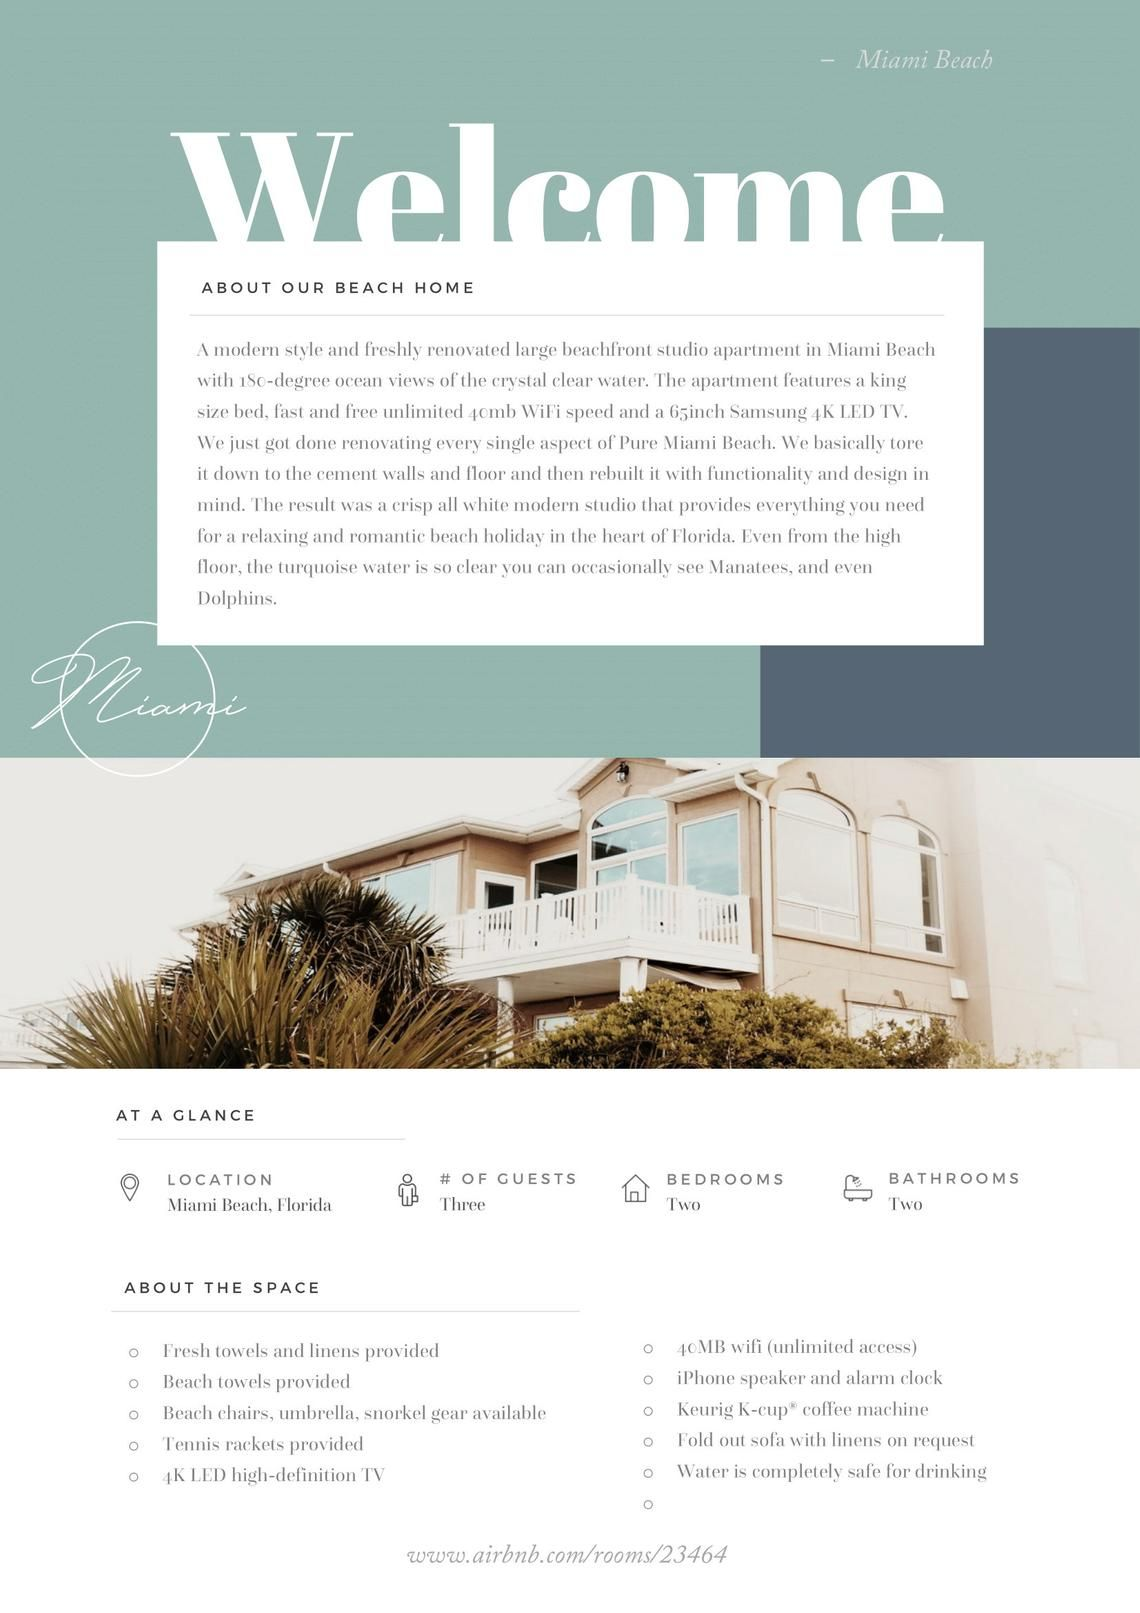 Home Rental Welcome Book Template Microsoft Word Template Etsy